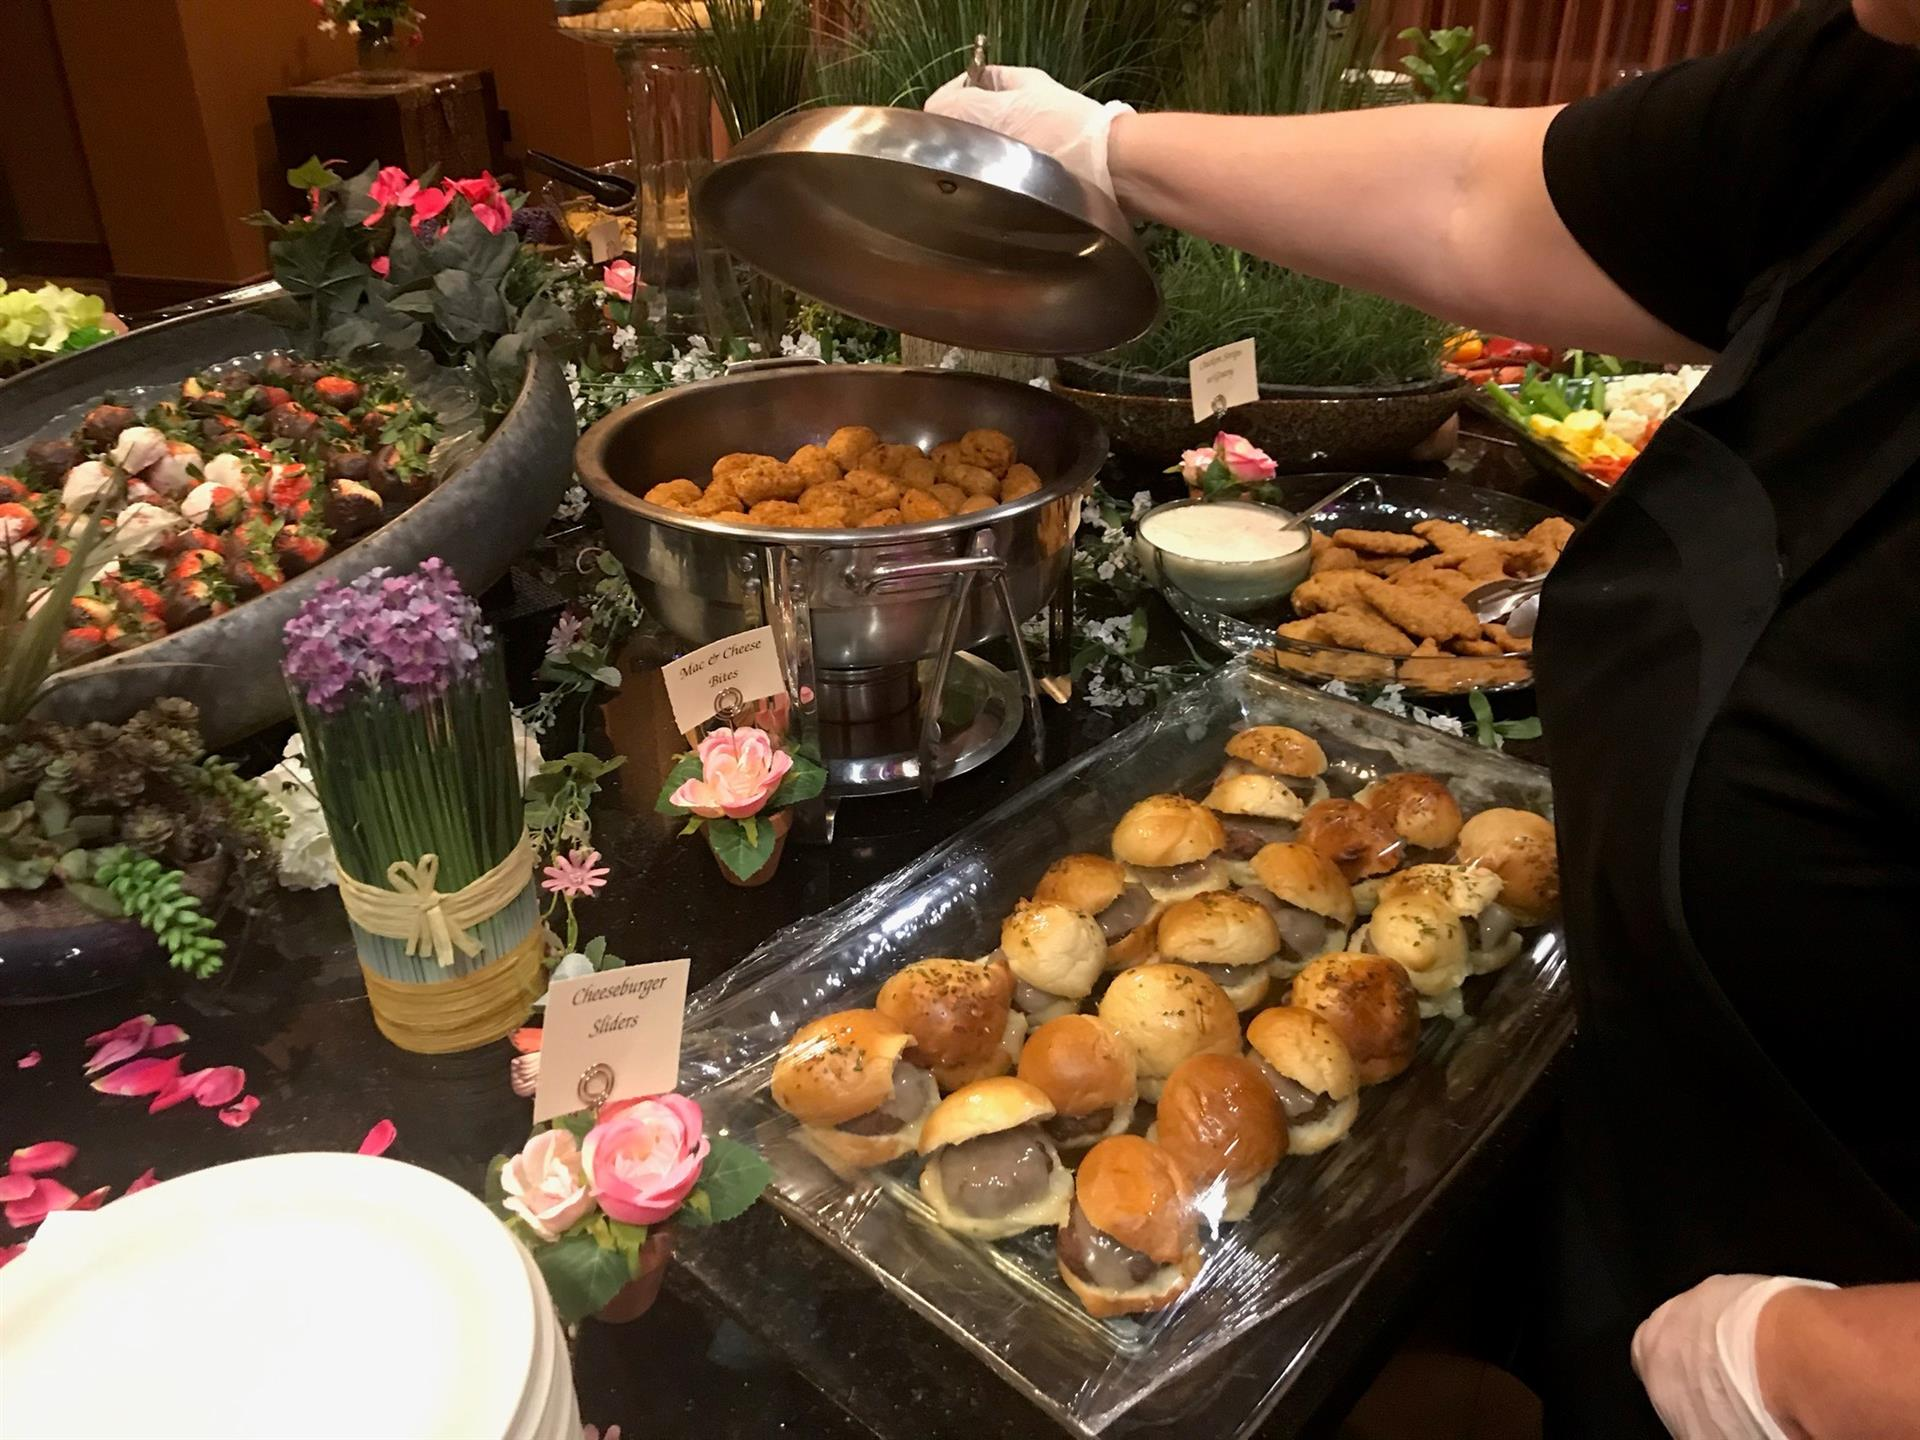 table of hot foods at an event including hamburger sliders and mac and cheese bites